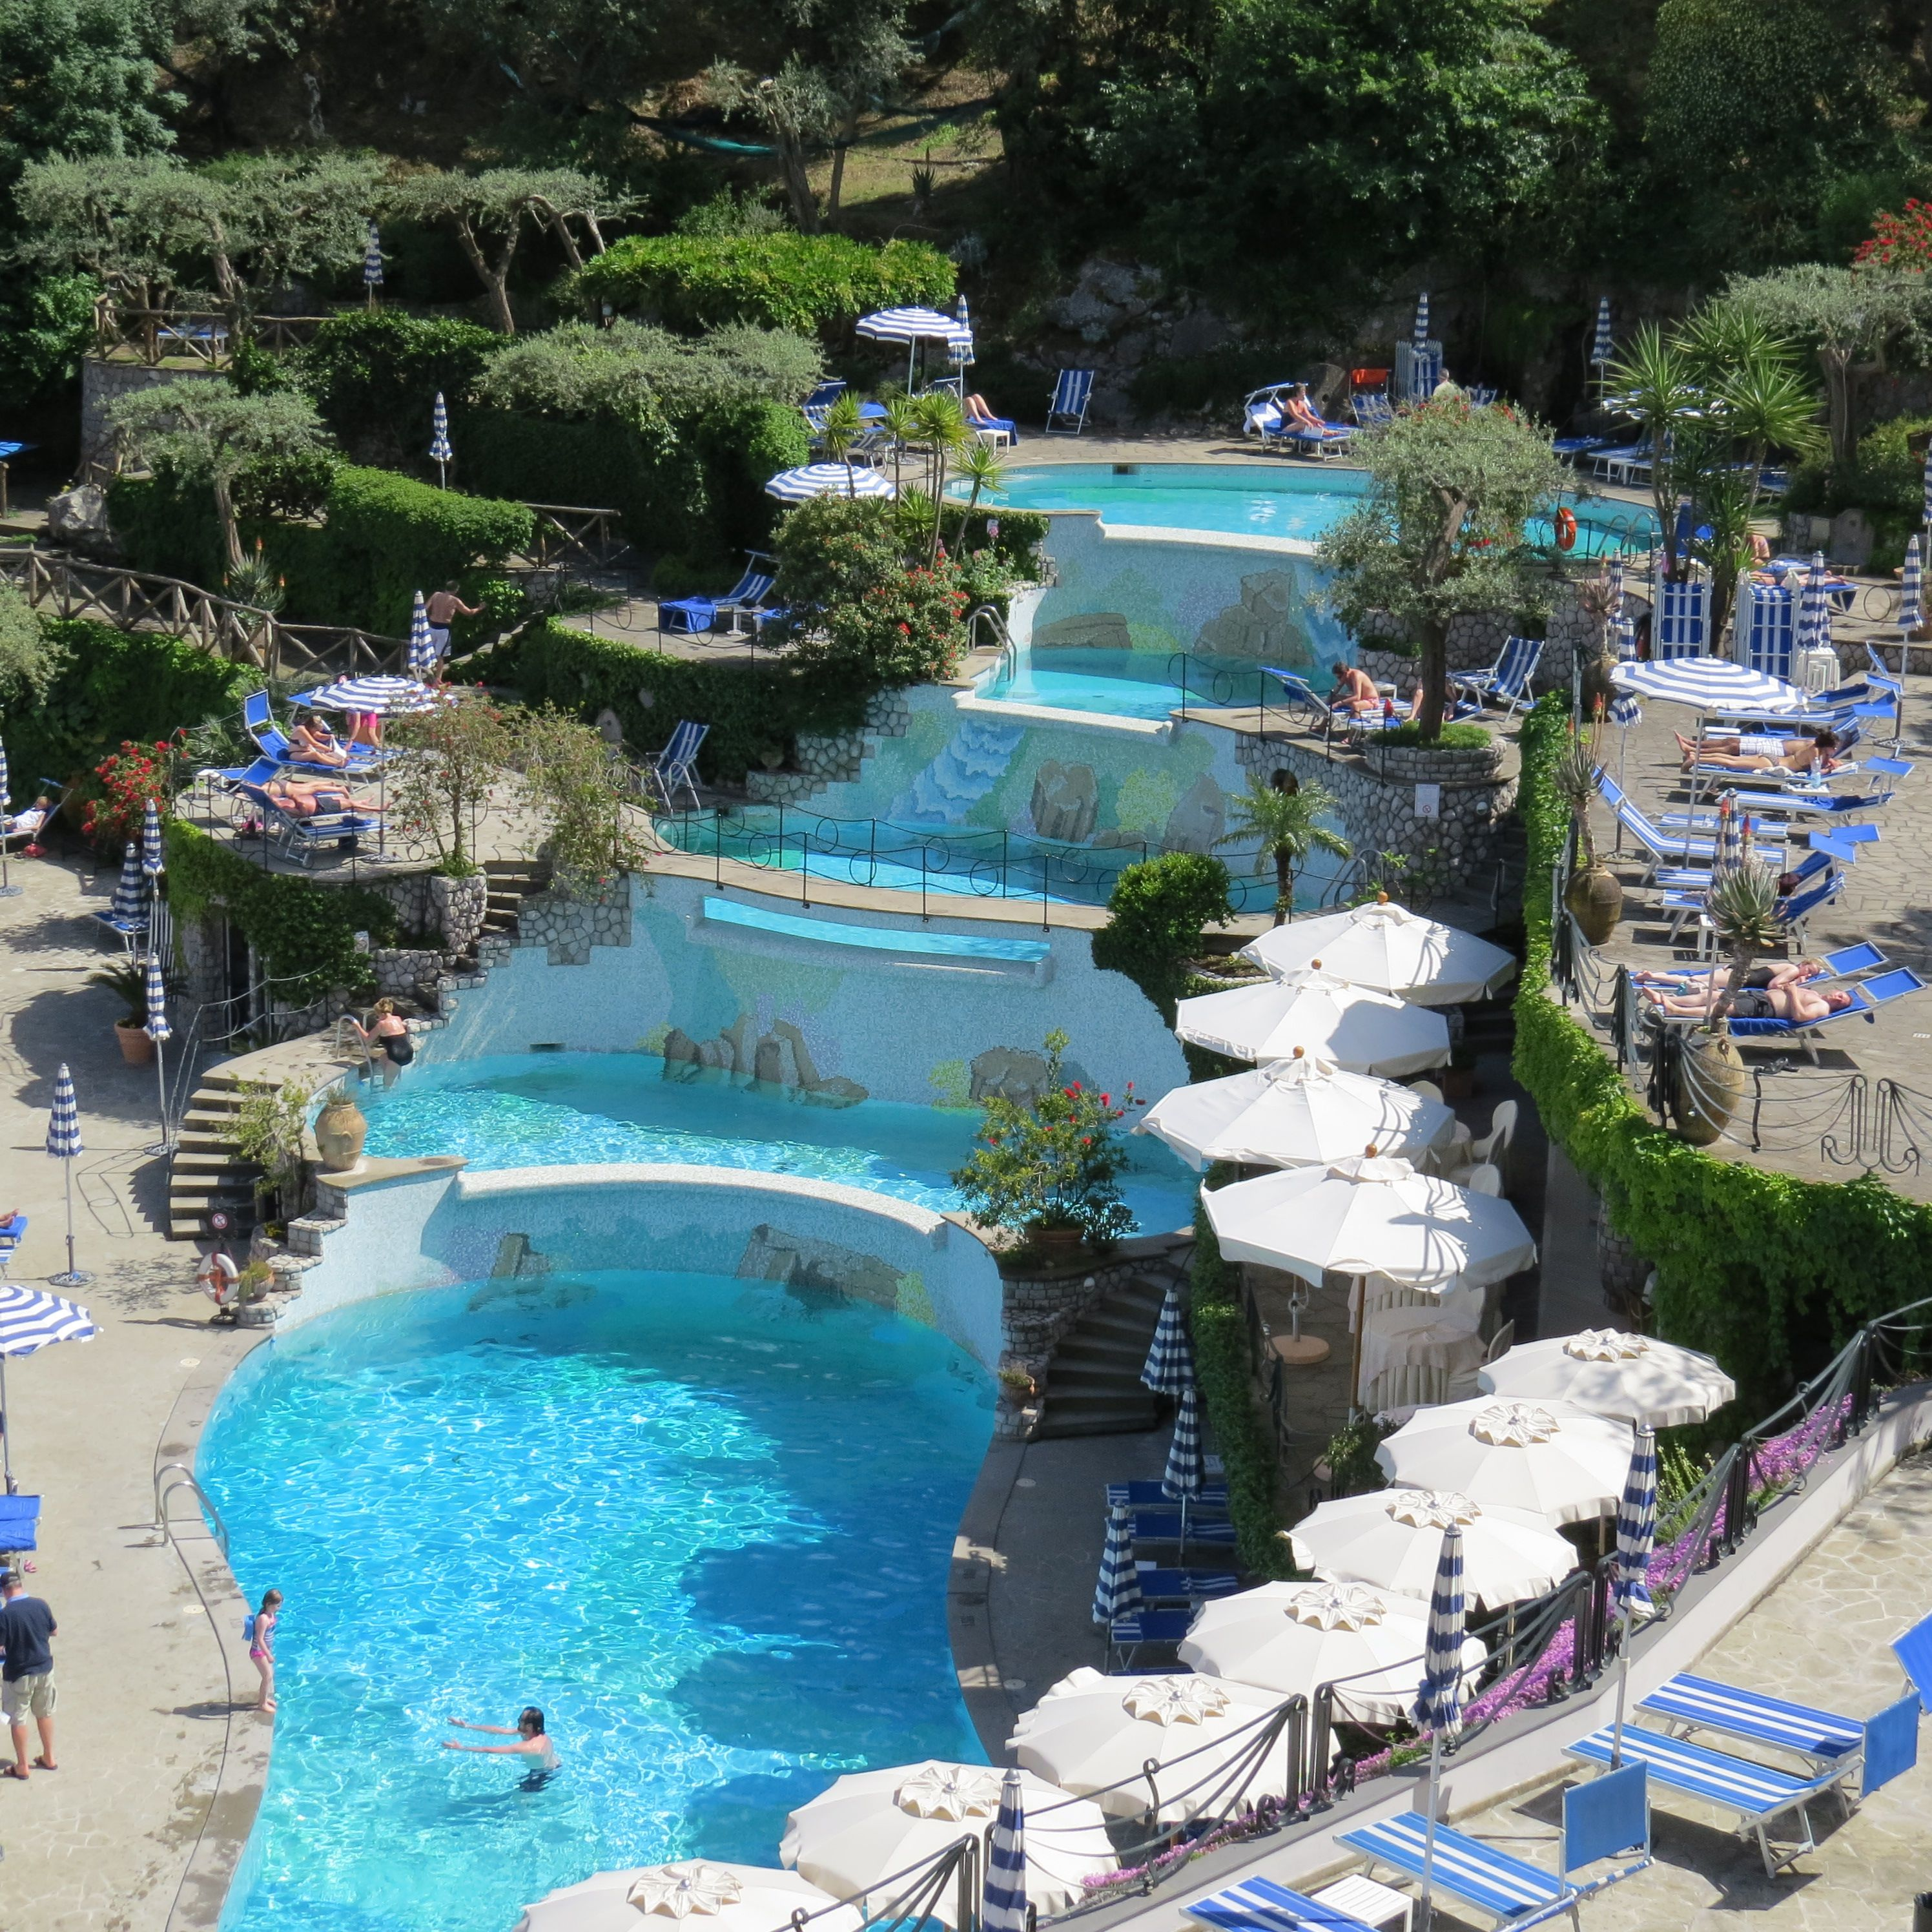 Grand hotel capodimonte sorrento italy places to go - Hotel in sorrento italy with swimming pool ...